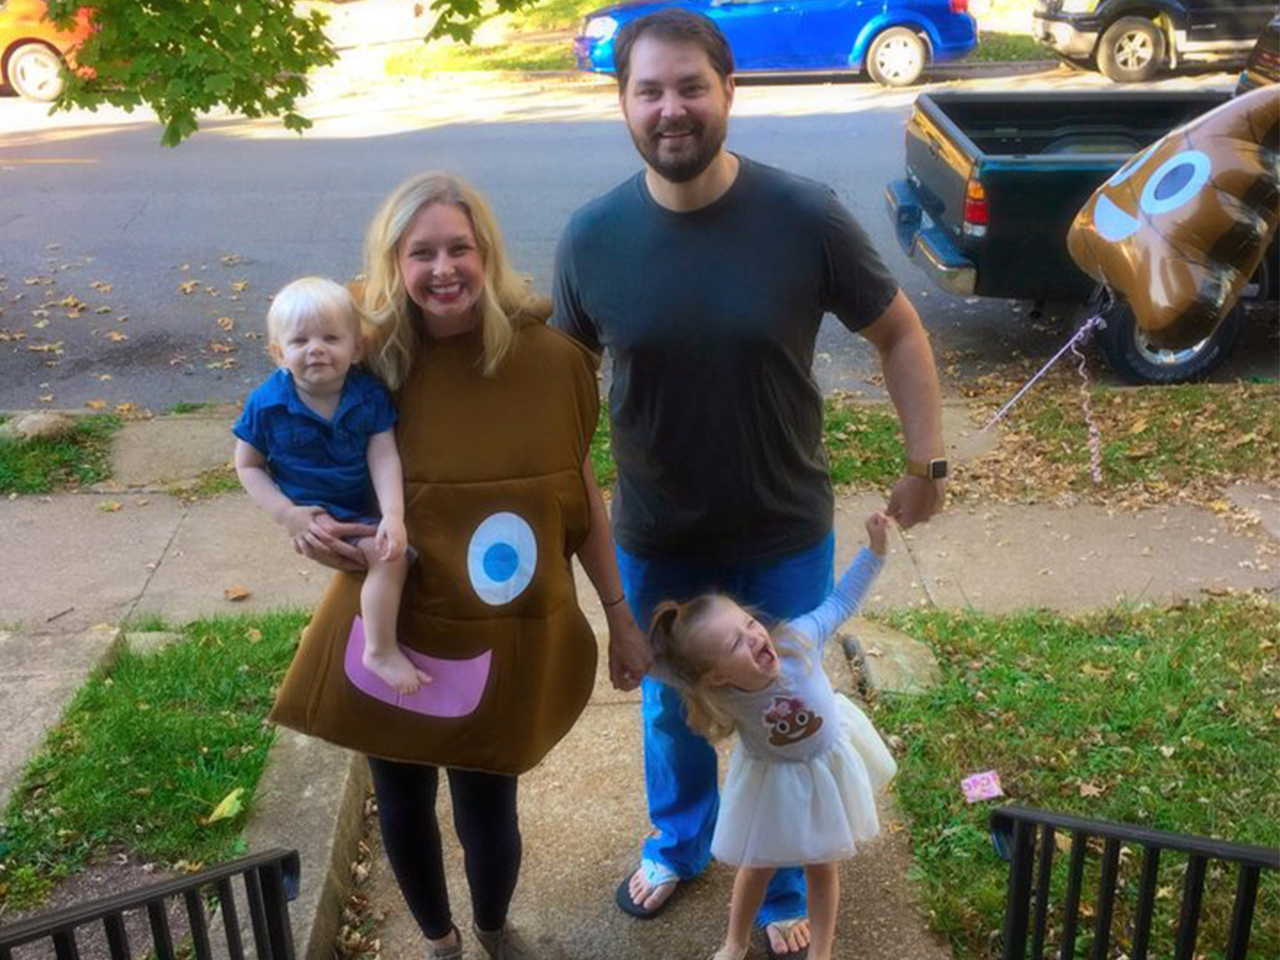 Family throwing a poop emoji party